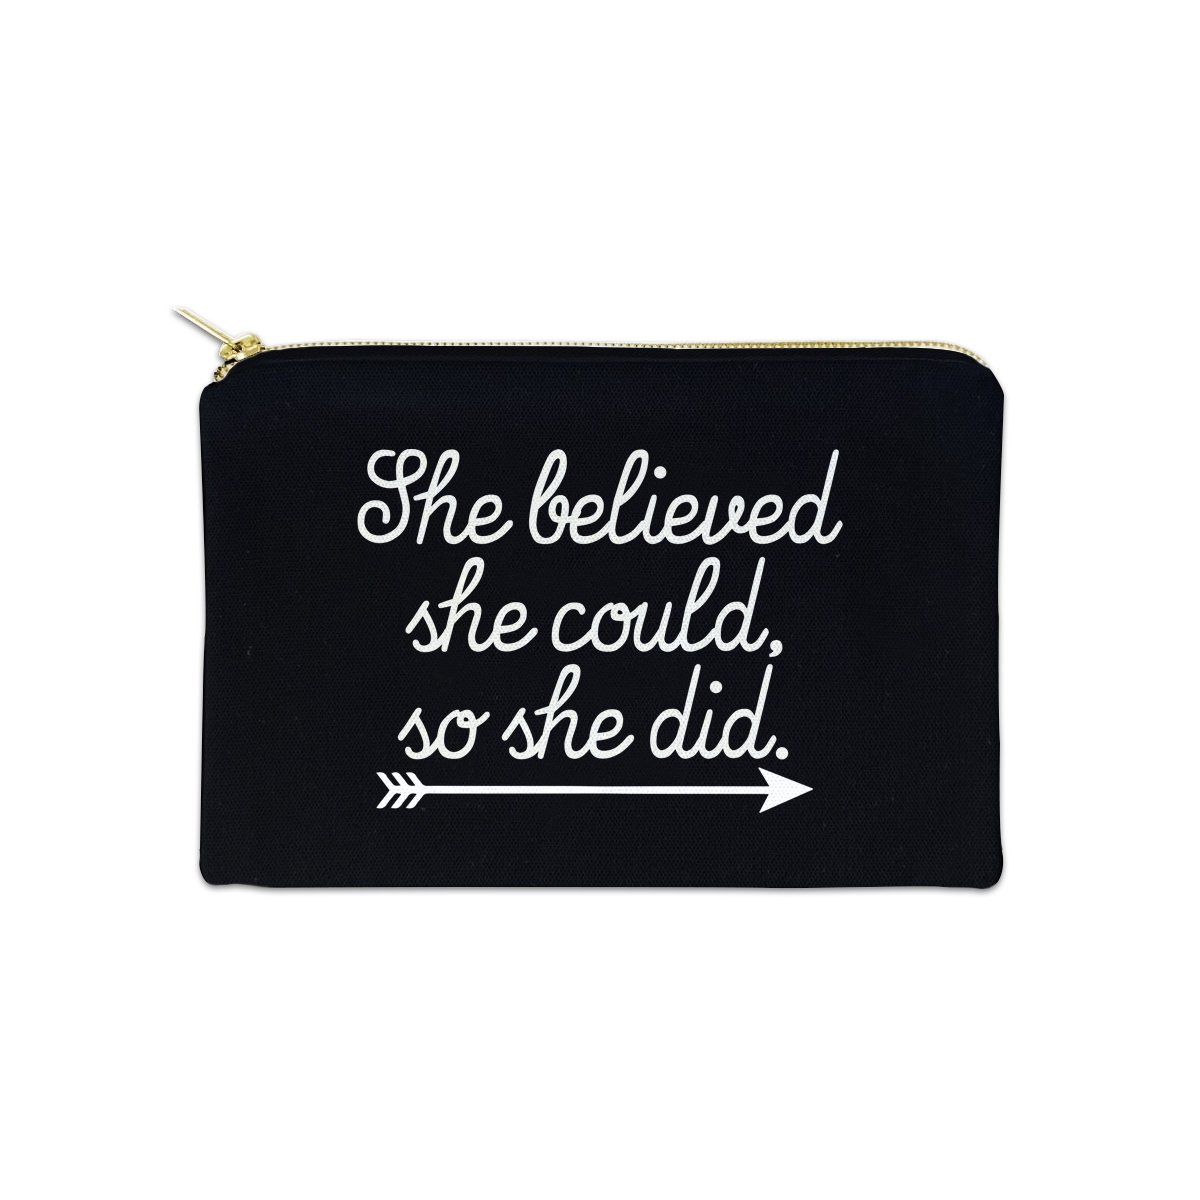 She Believed She Could So She Did 12 oz Cosmetic Makeup Cotton Canvas Bag - (Black Canvas)